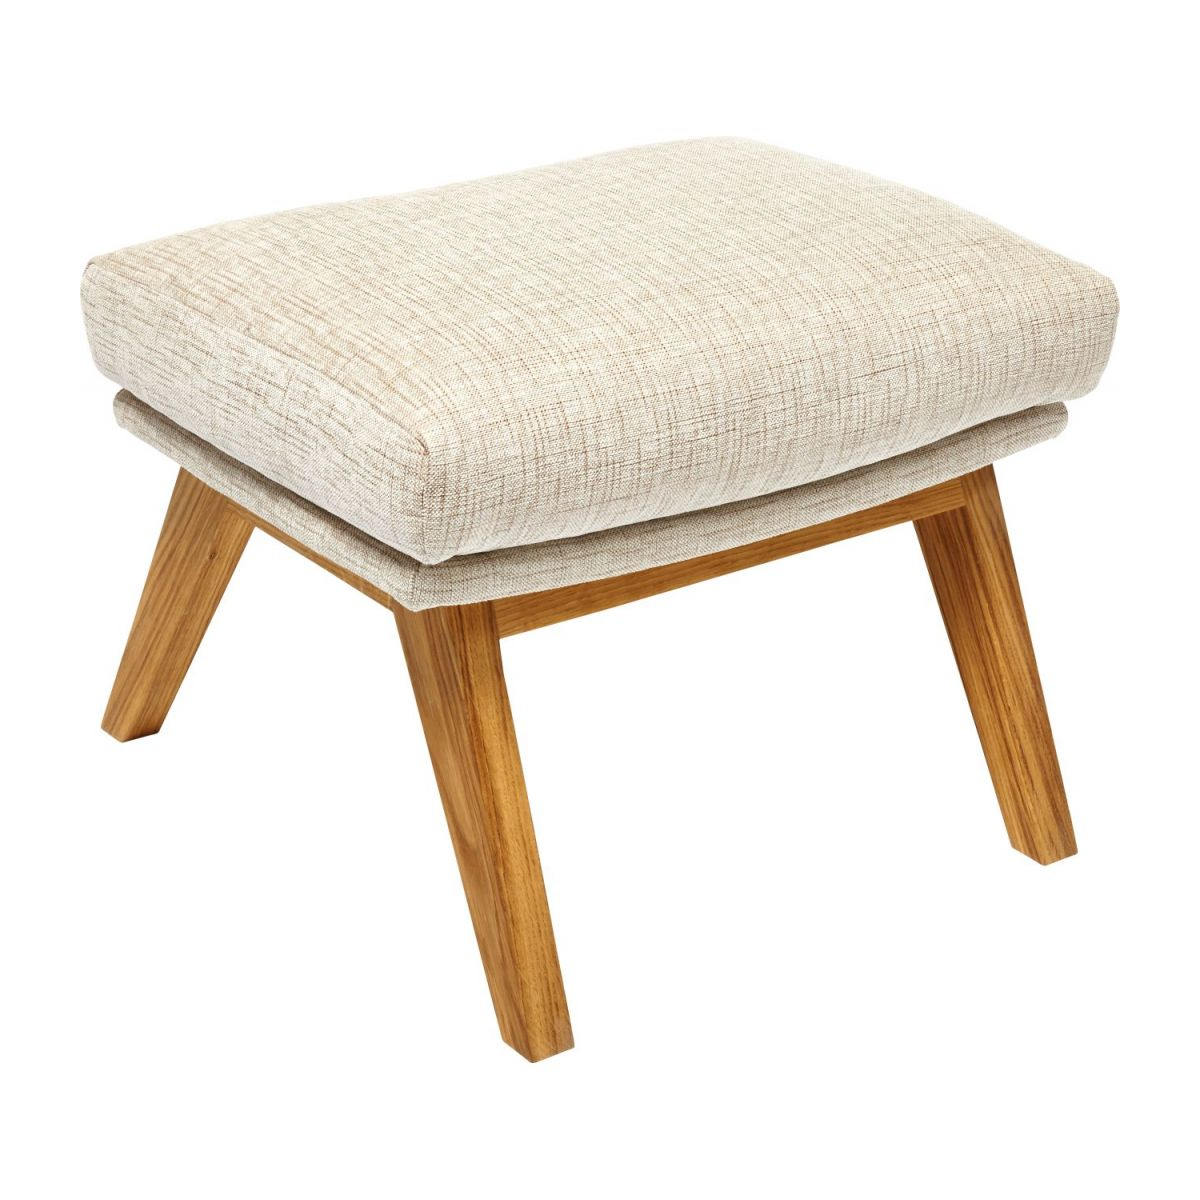 Footstool in Ancio fabric, nature with oak legs n°1